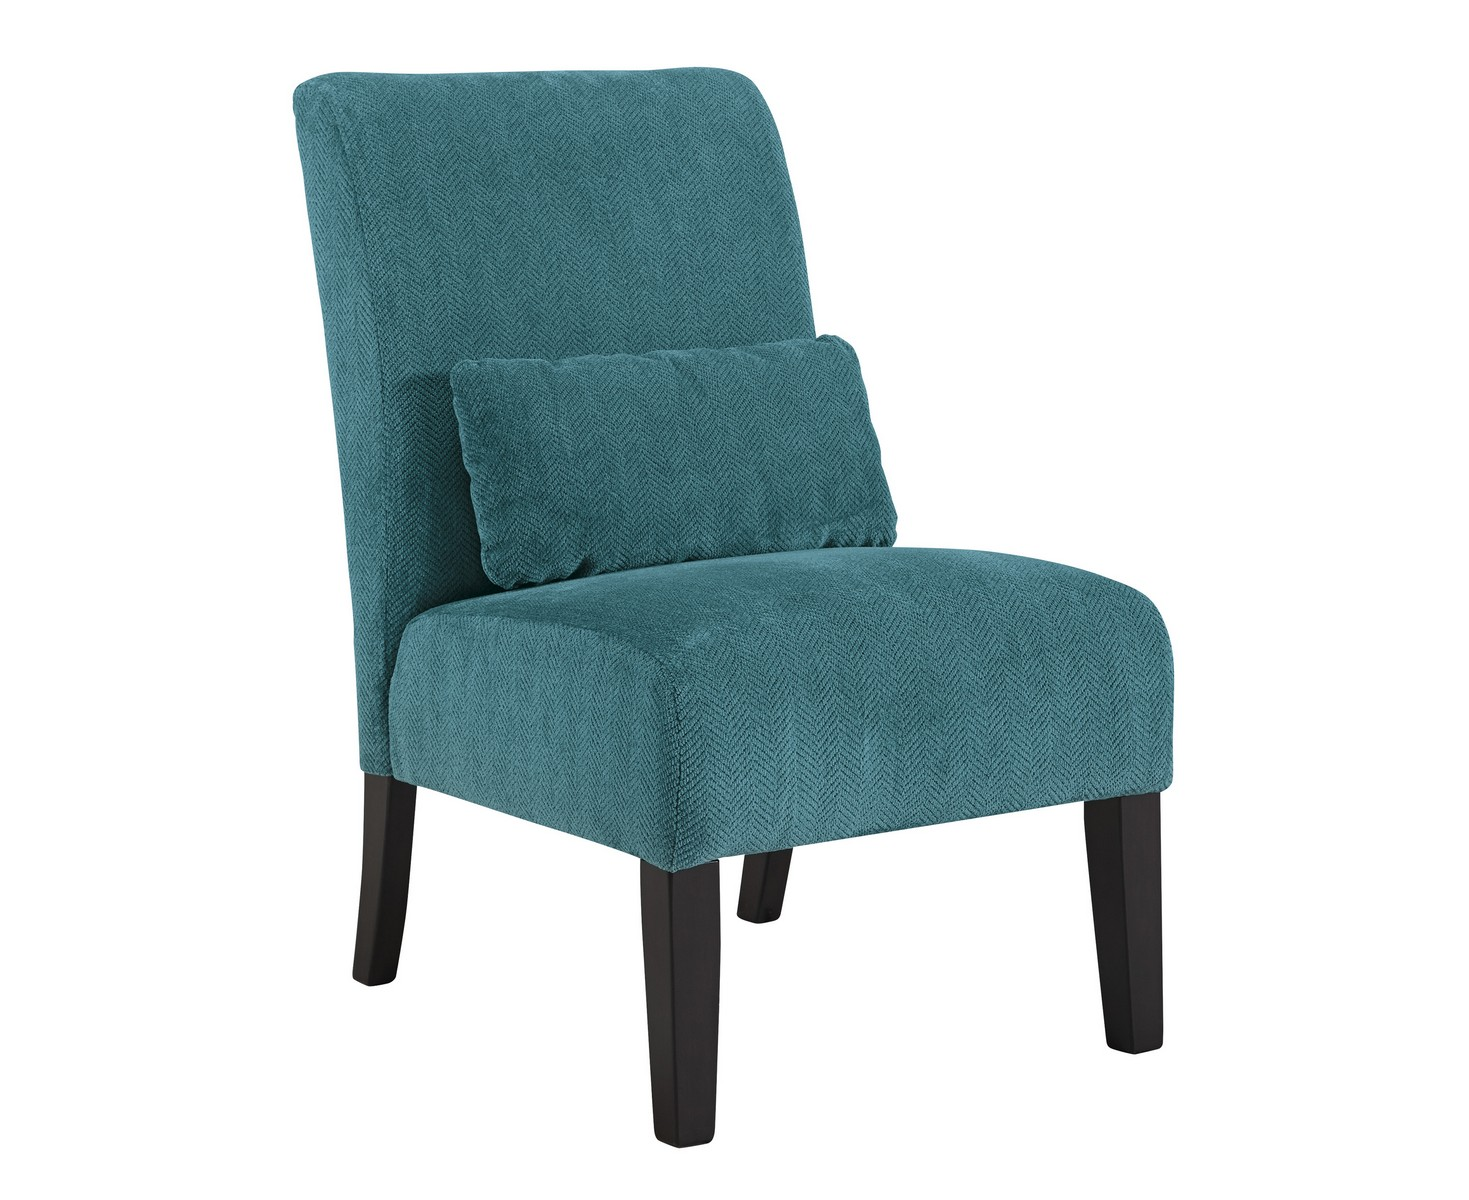 Ashley Annora Accent Chair - Teal